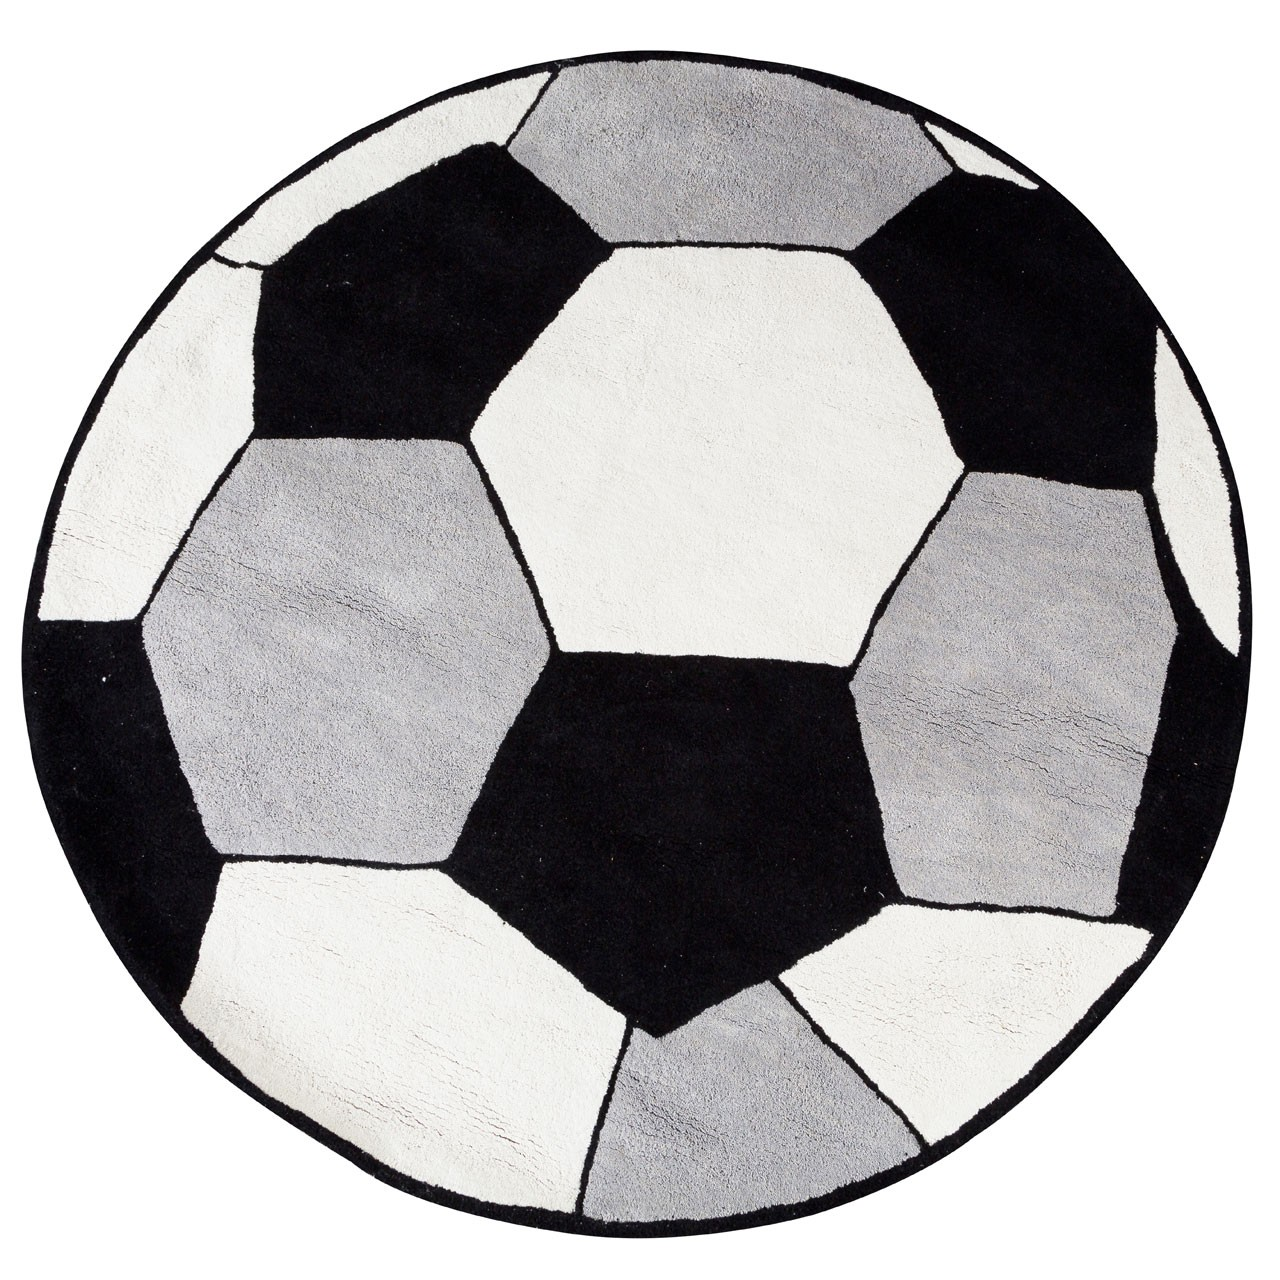 Prime Furnishing Kids Football Rug, Cotton - Black